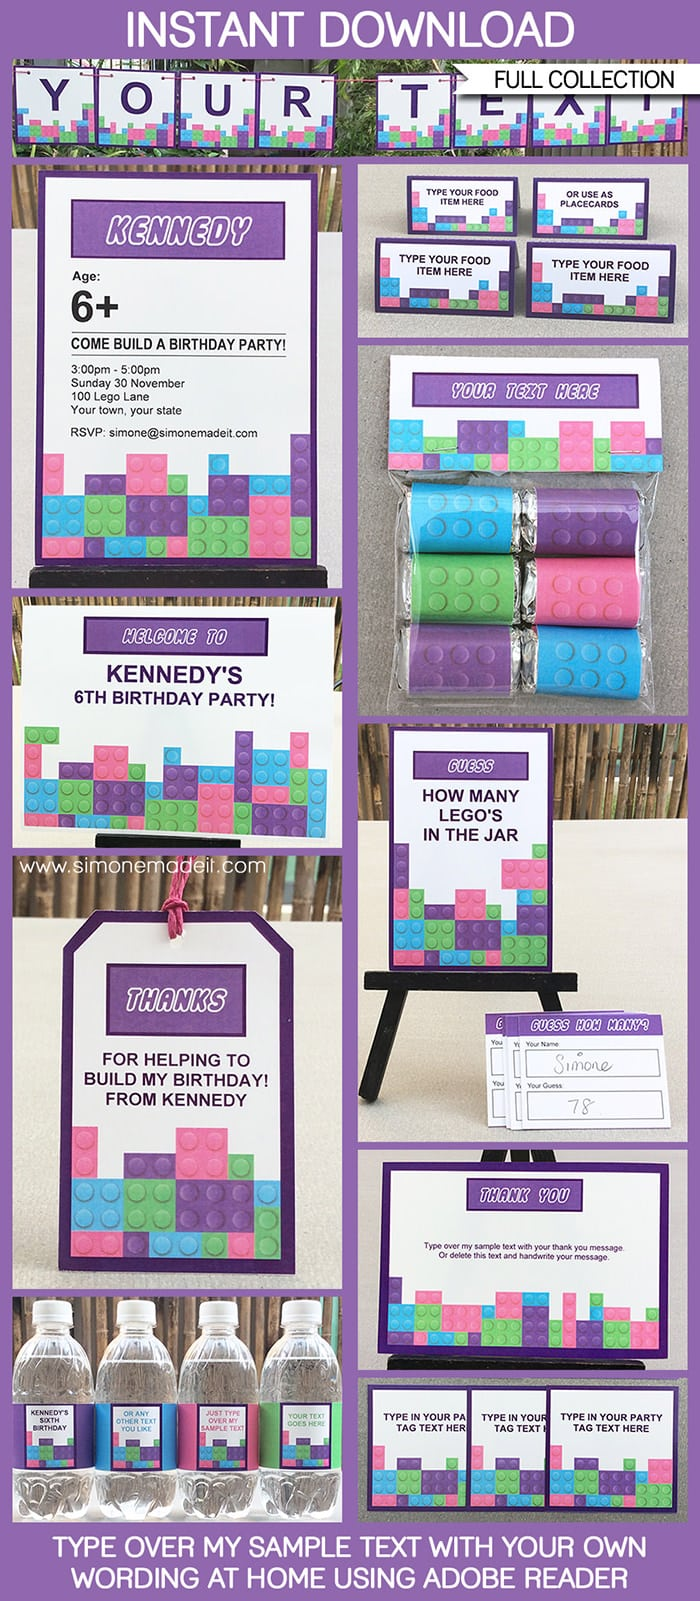 Lego Friends Party Printables, Invitations & Decorations